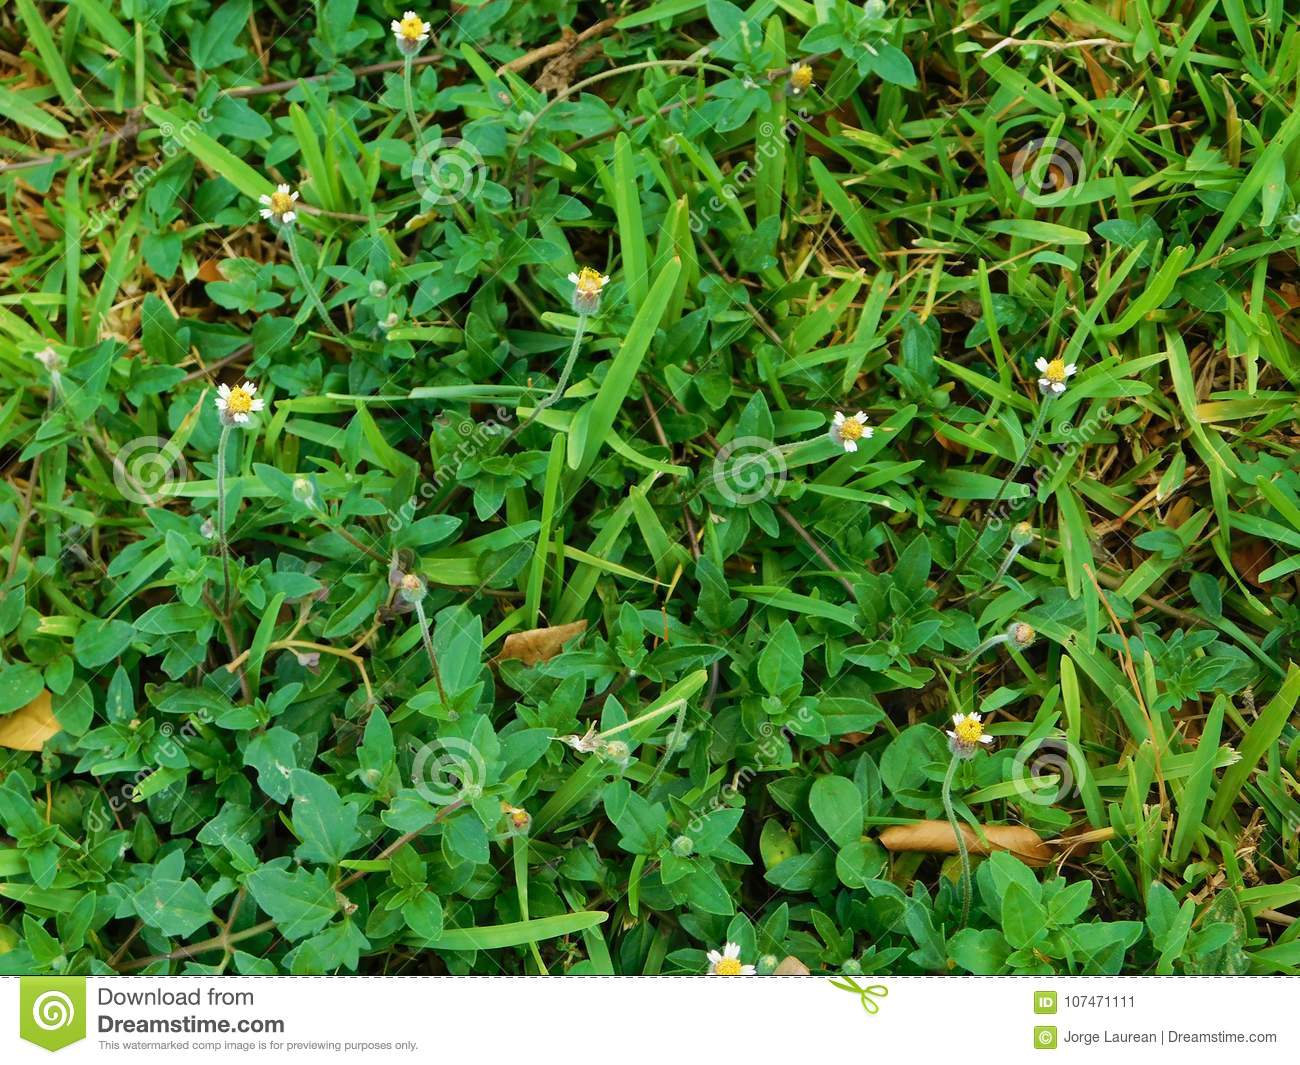 Lawn texture with flowers stock image image of plant 107471111 image of a lawn texture with little yellow flowers mightylinksfo